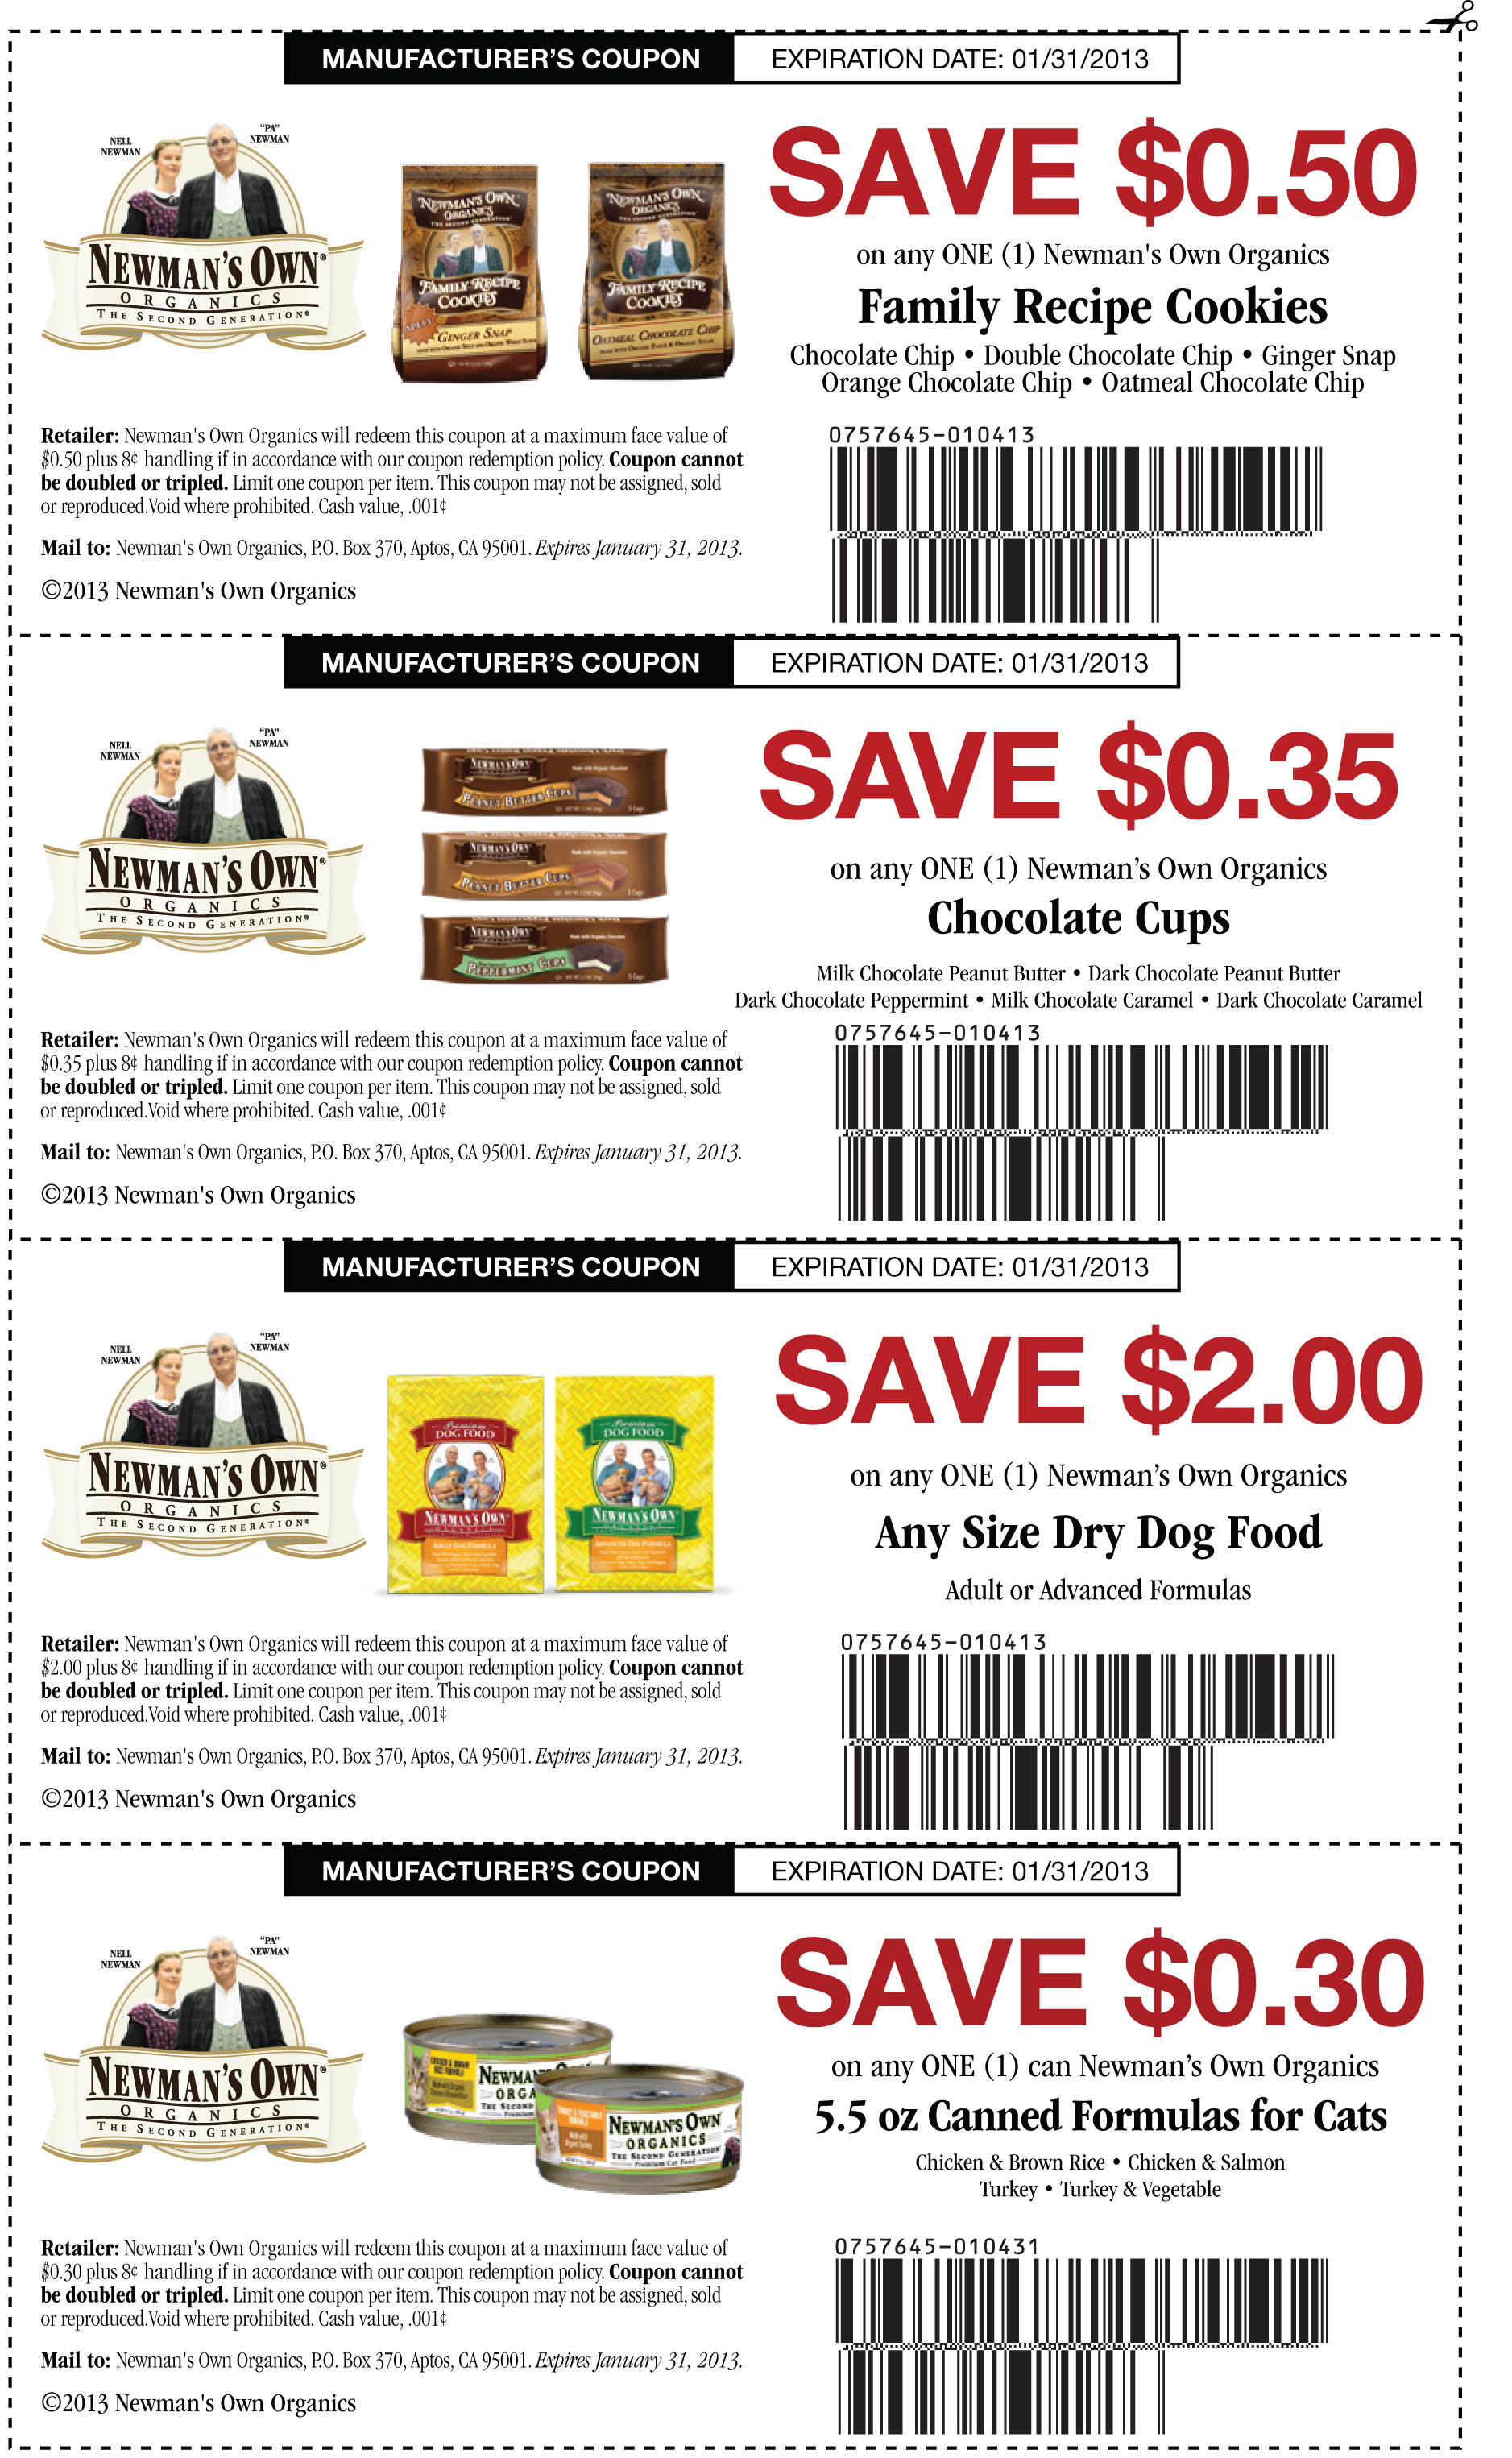 Sites to print coupons